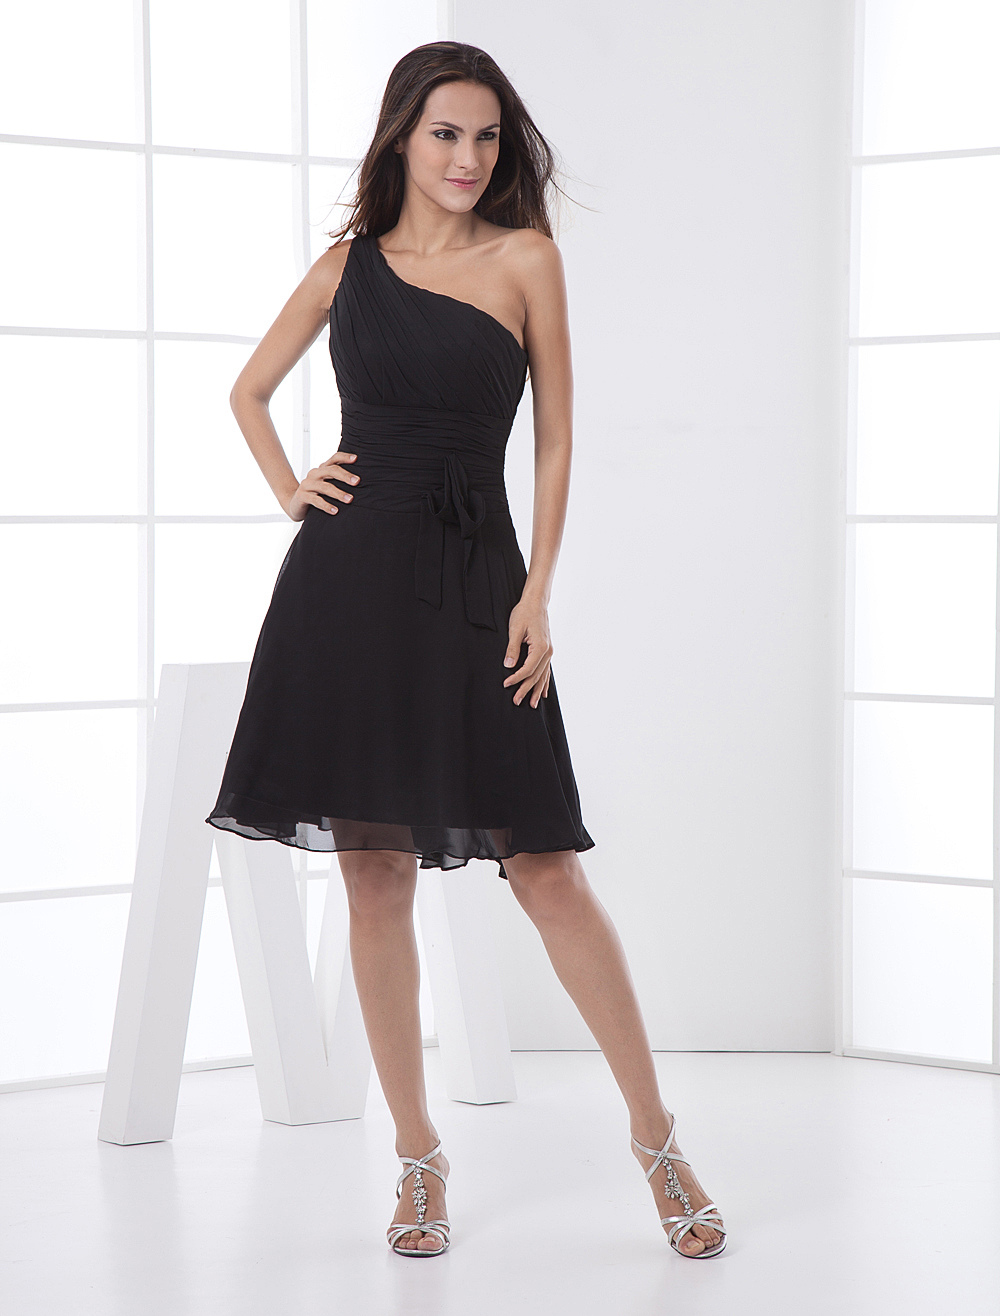 One-Shoulder Ruched Cocktail Dress Wedding Guest Dress (Cheap Party Dress) photo